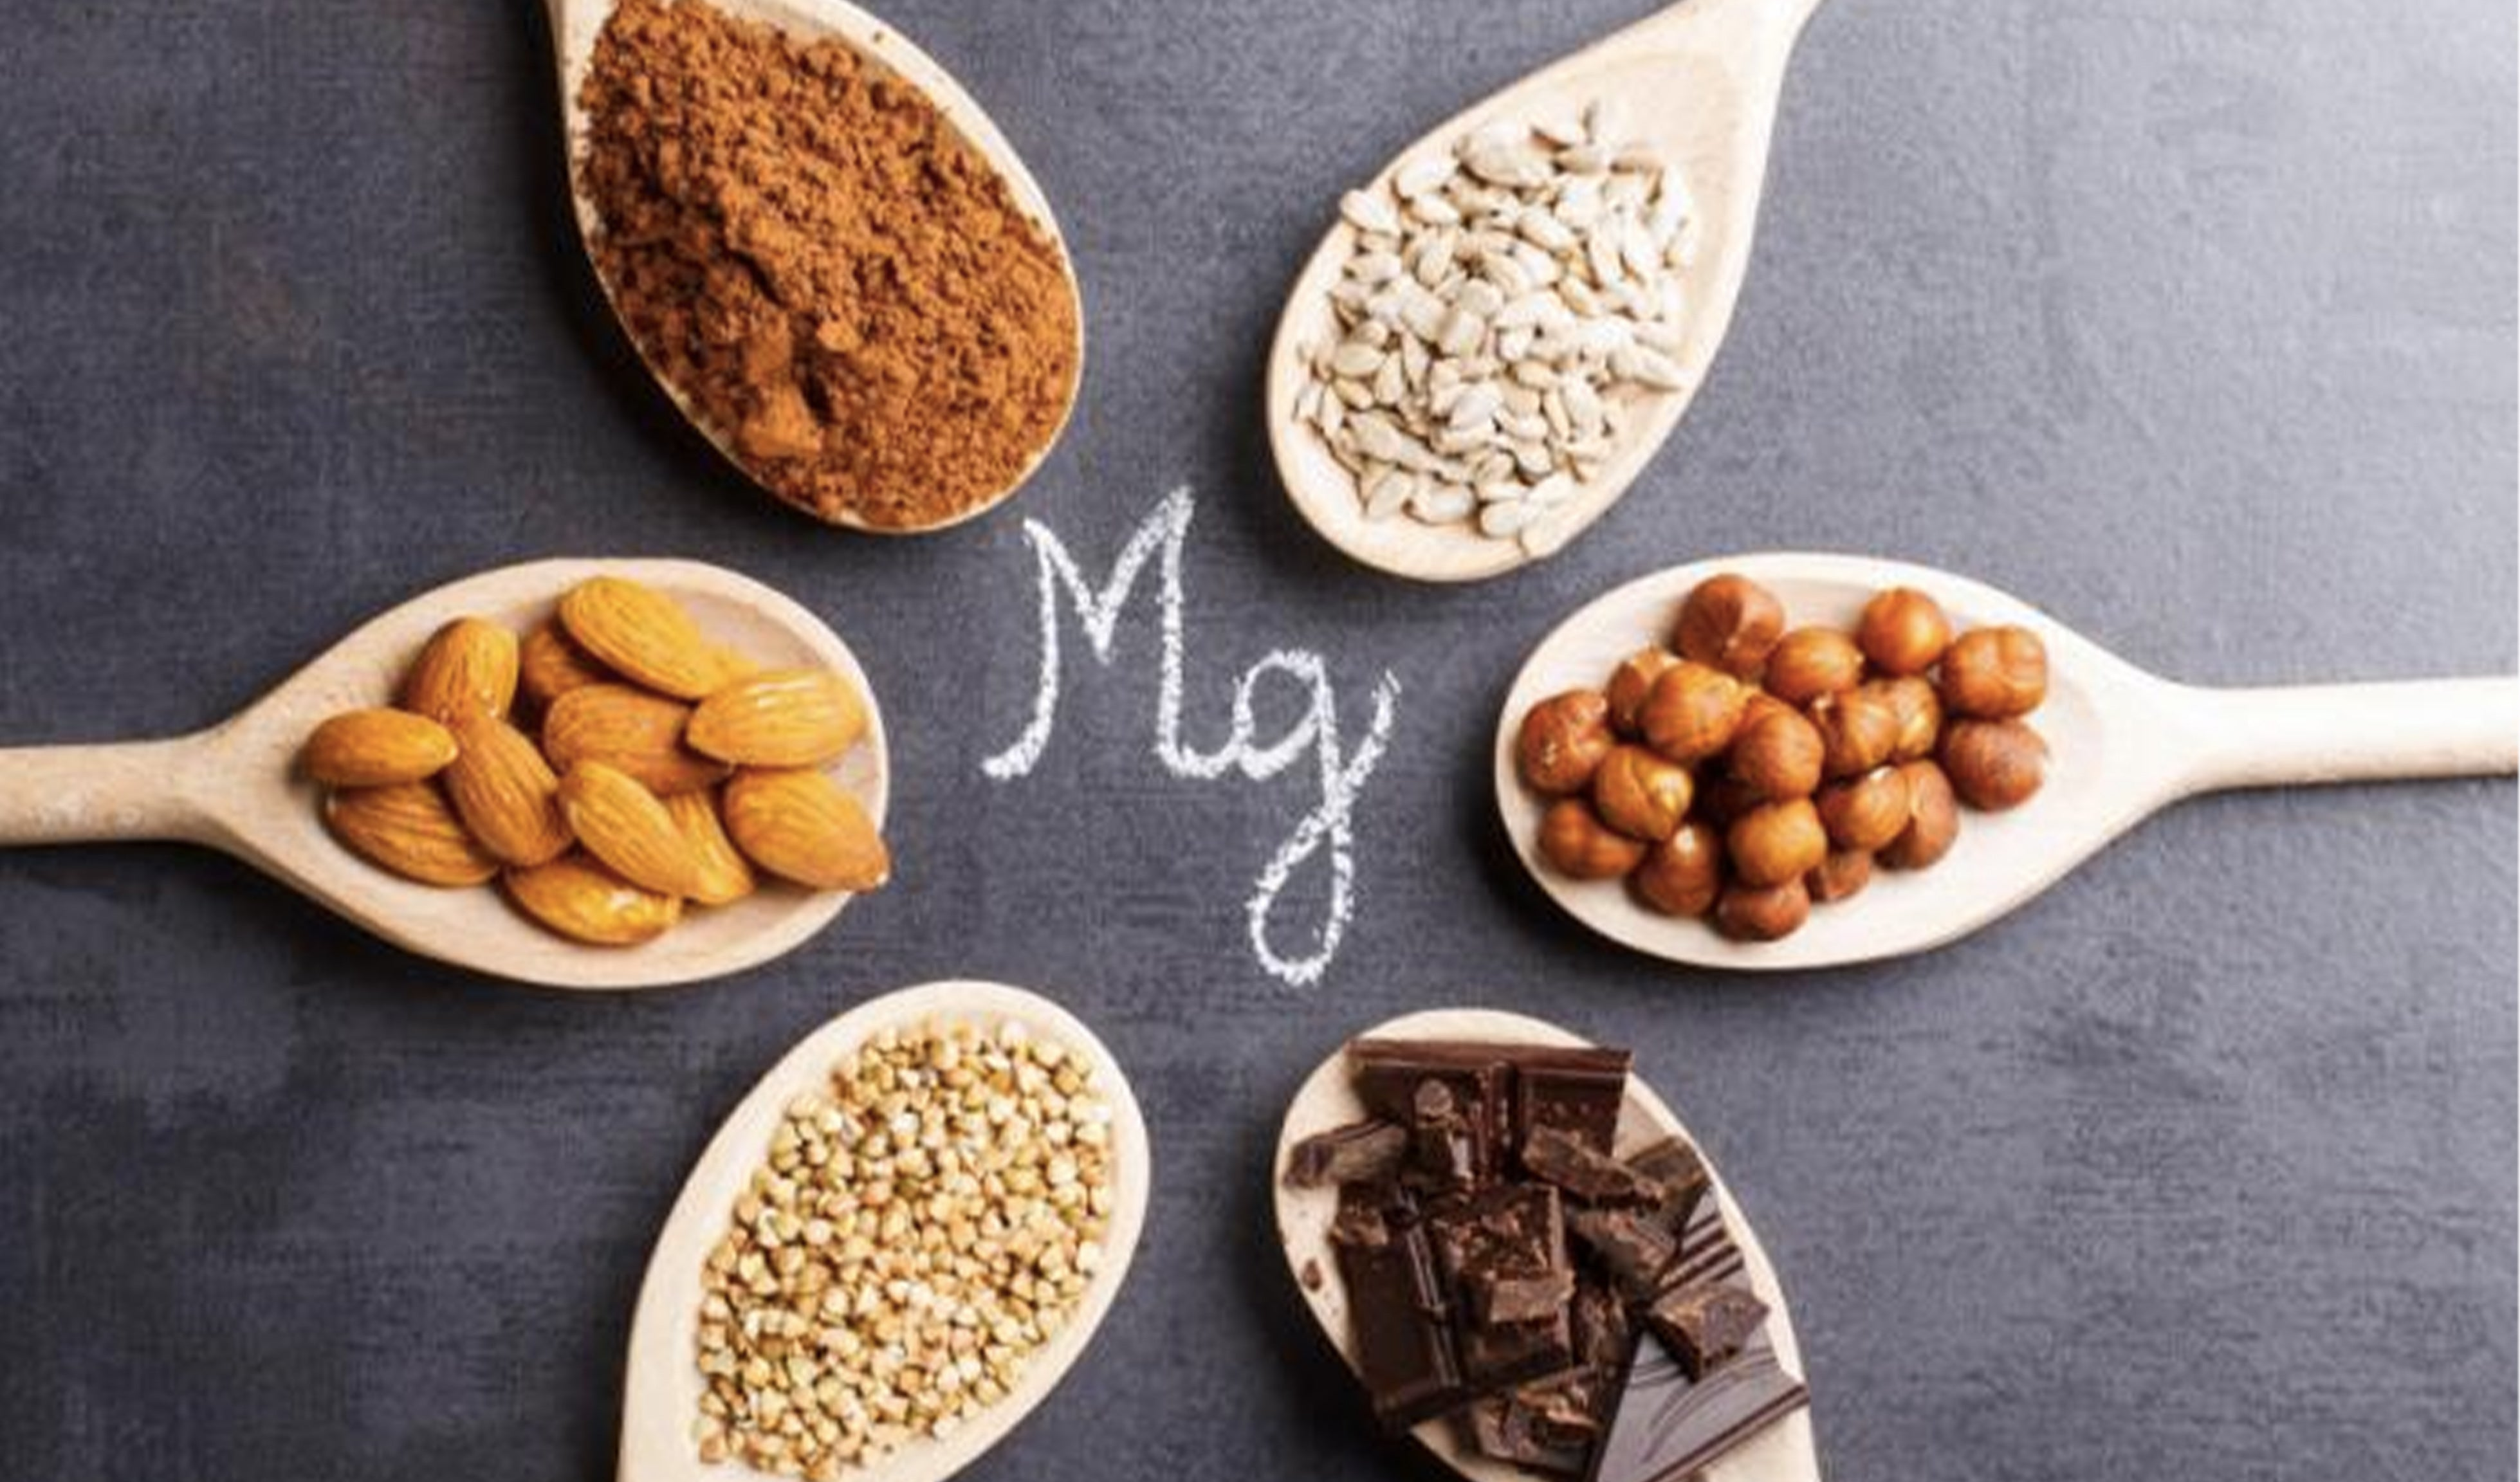 Here are the foods to eat to fill up on magnesium and fight fatigue and insomnia